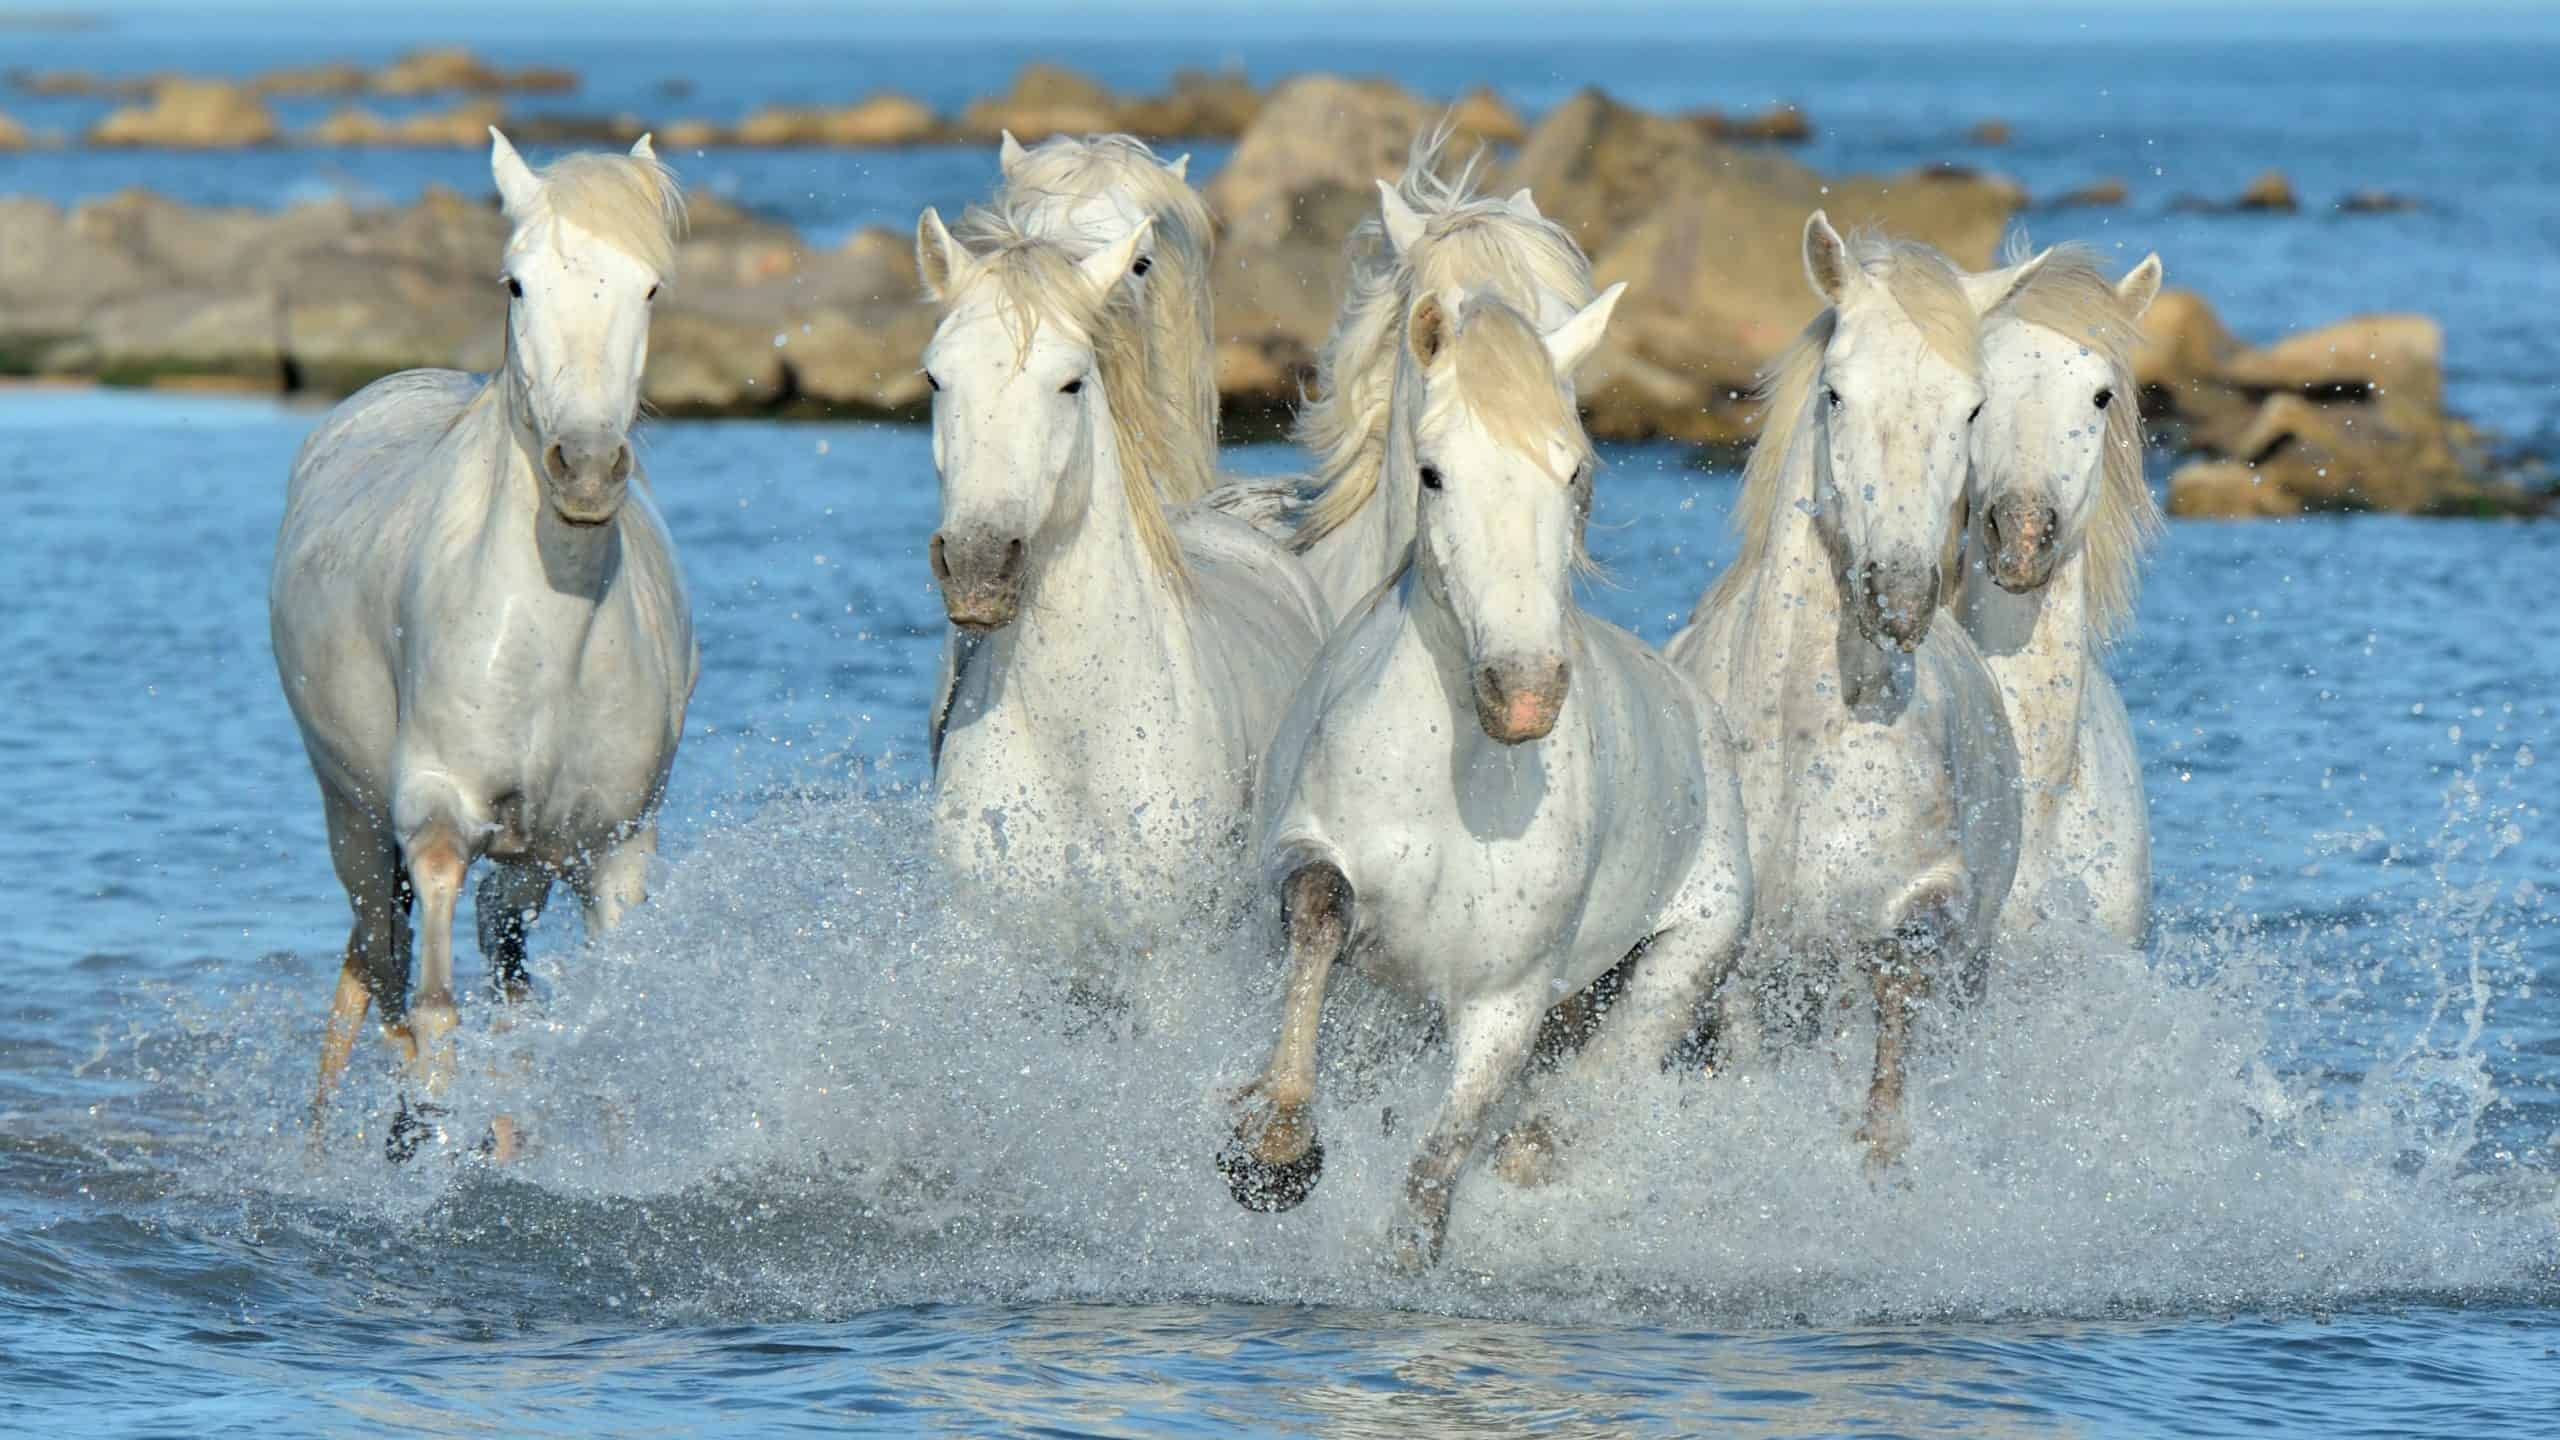 Herd of White Camargue Horses running on the water . Parc Regional de Camargue - Provence, France